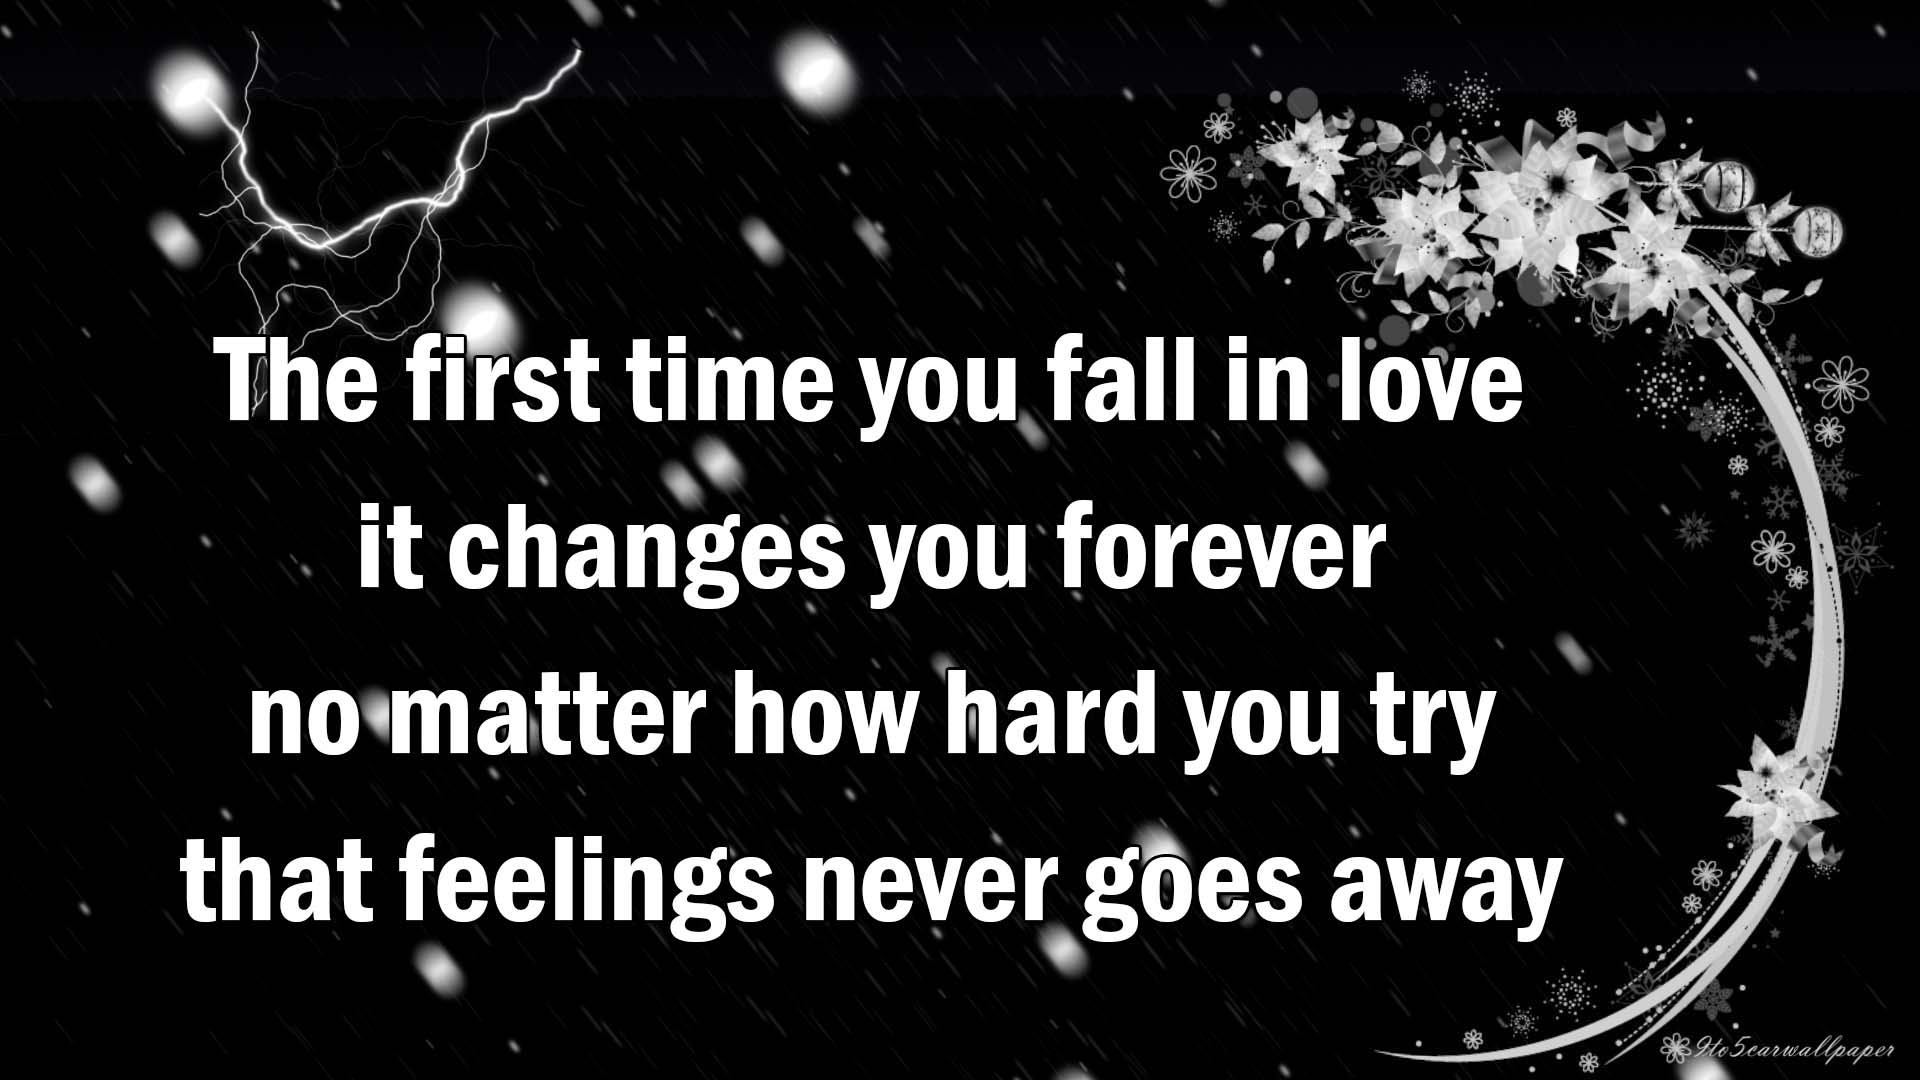 love-changes-you-forever-quotes-images-hd-wallpapers-2017